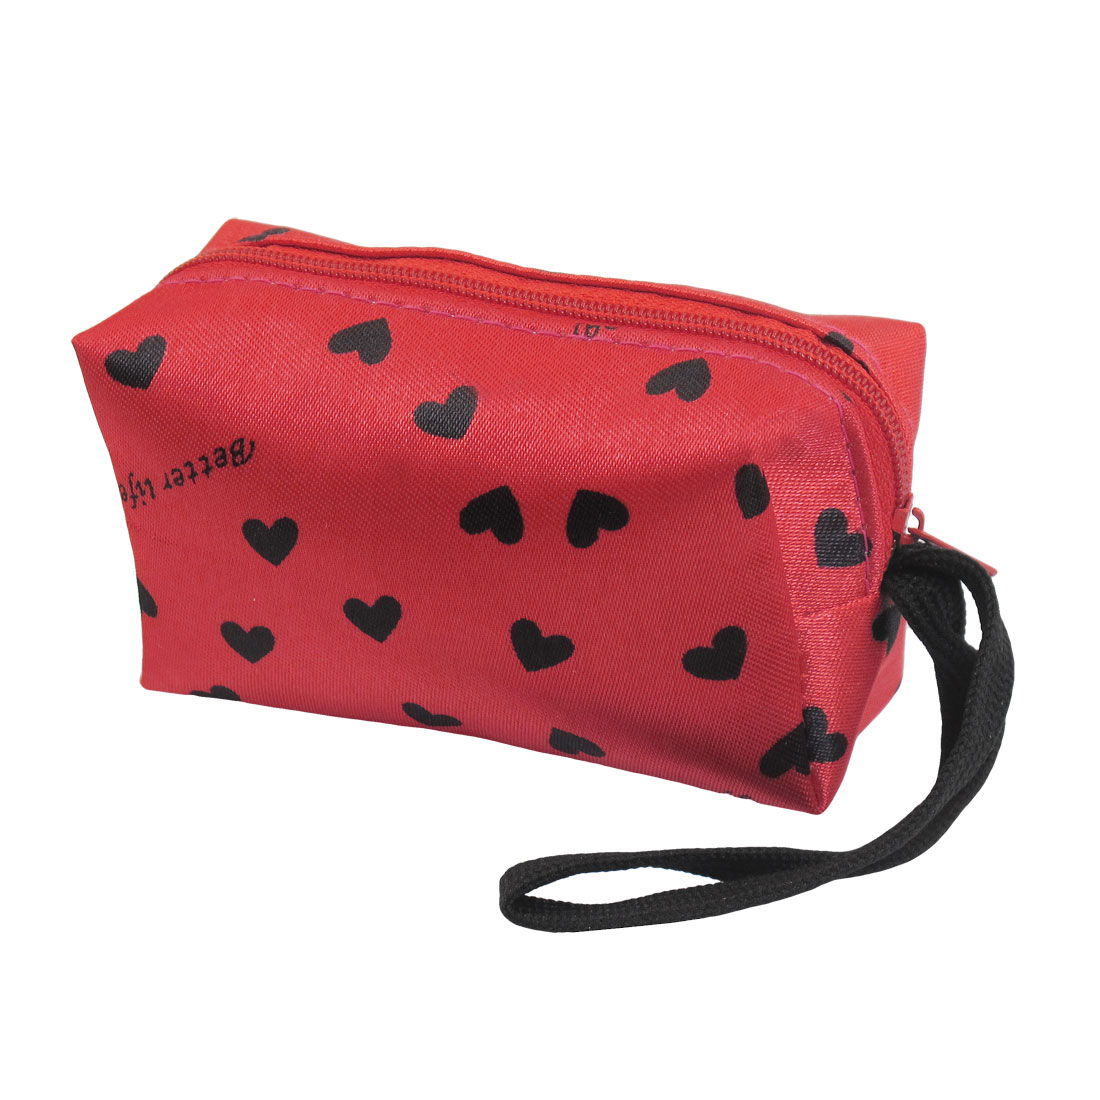 Red Black Heart Letter Print Fabric Wallet Money Coin Purse